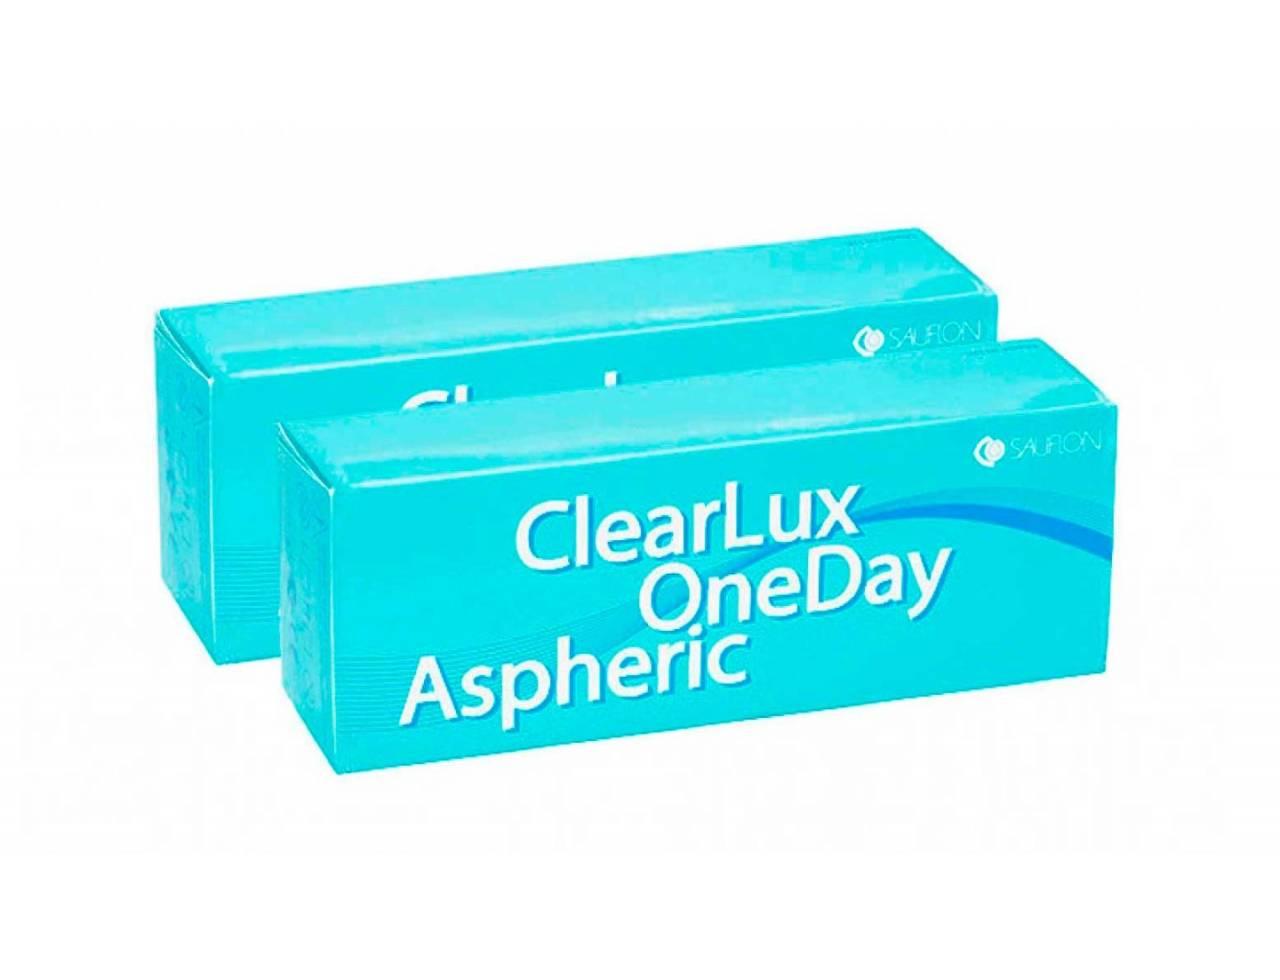 ClearLux One Day Aspheric - 2 упаковки (-3%)